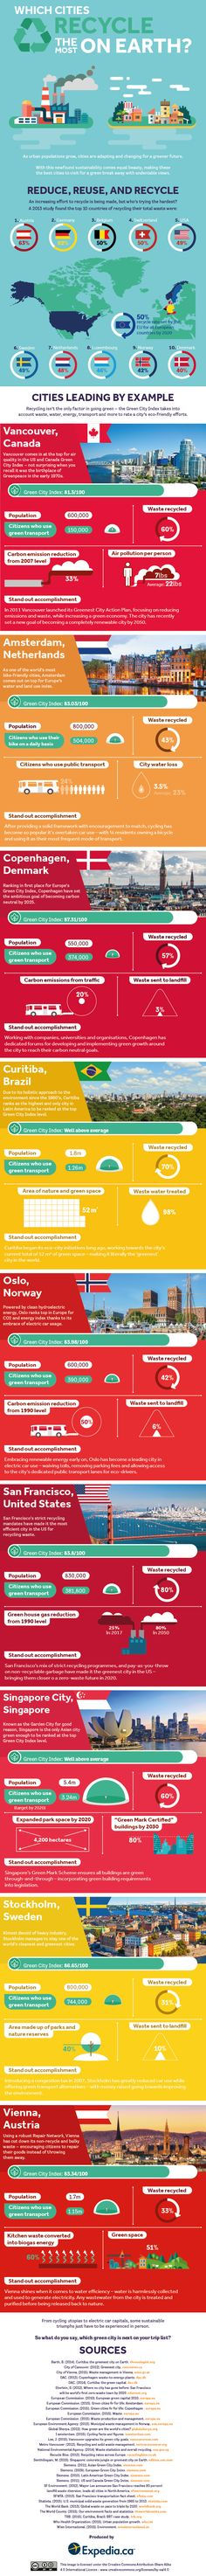 Which cities recycle the most on Earth #infographic #travel #recycling #eco